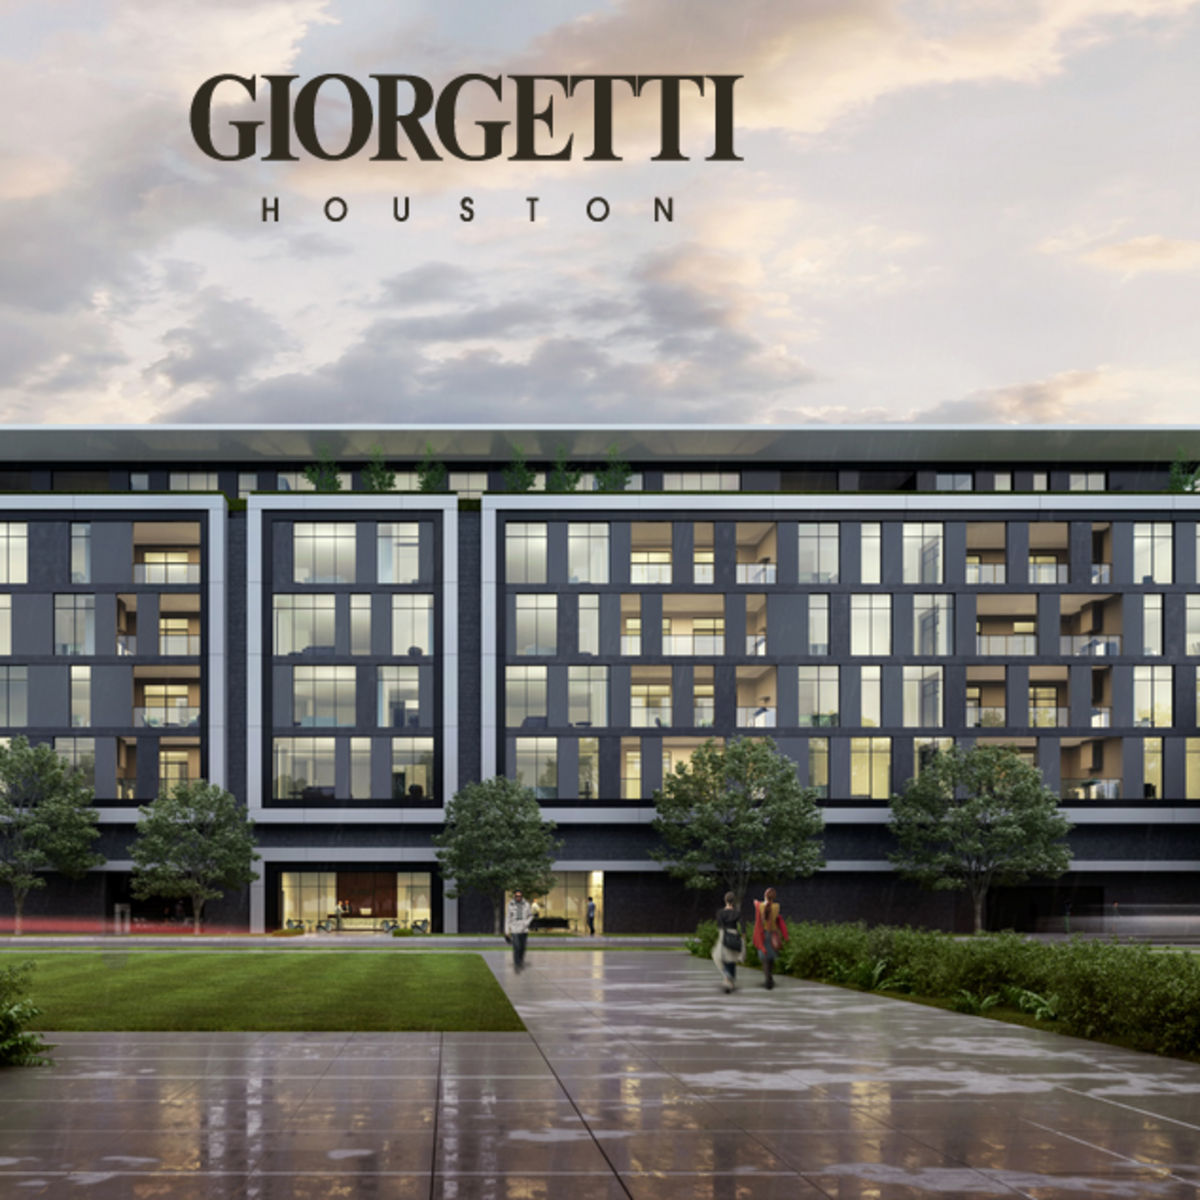 The Giorgetti Houston